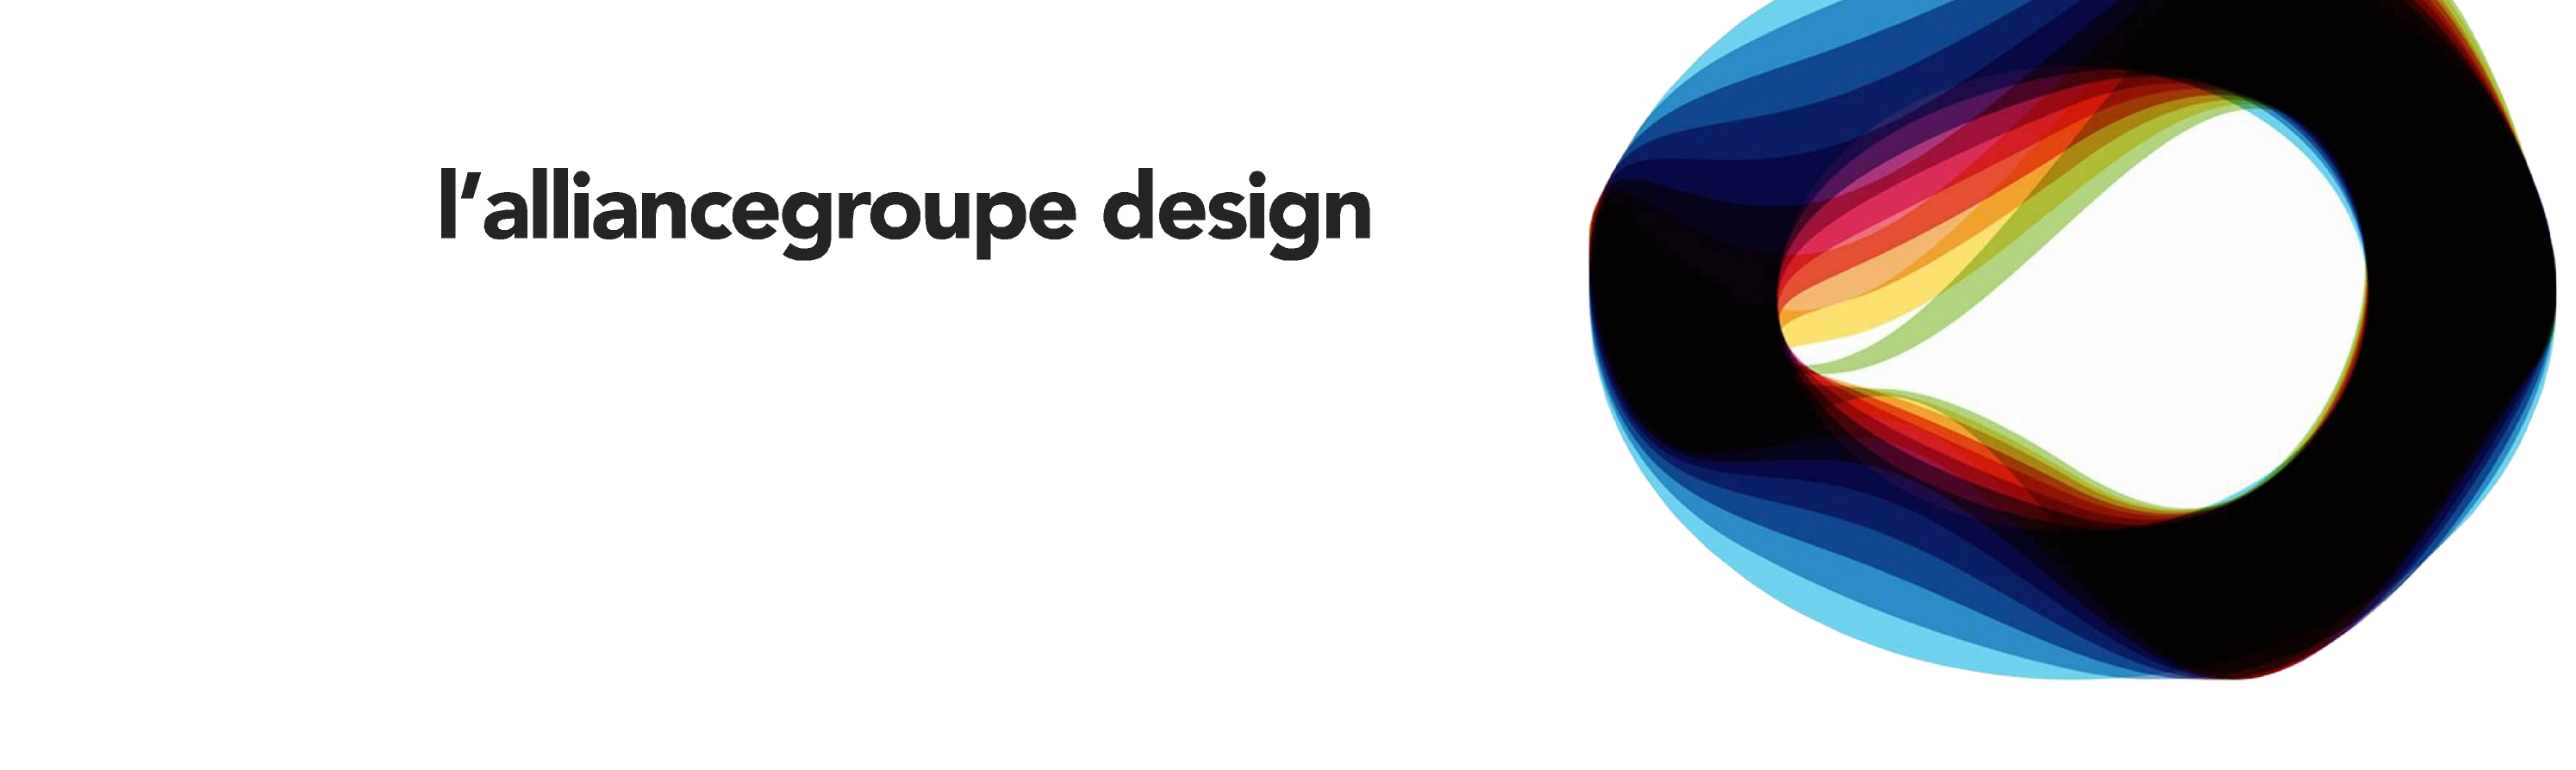 l'alliance groupe design 2M18